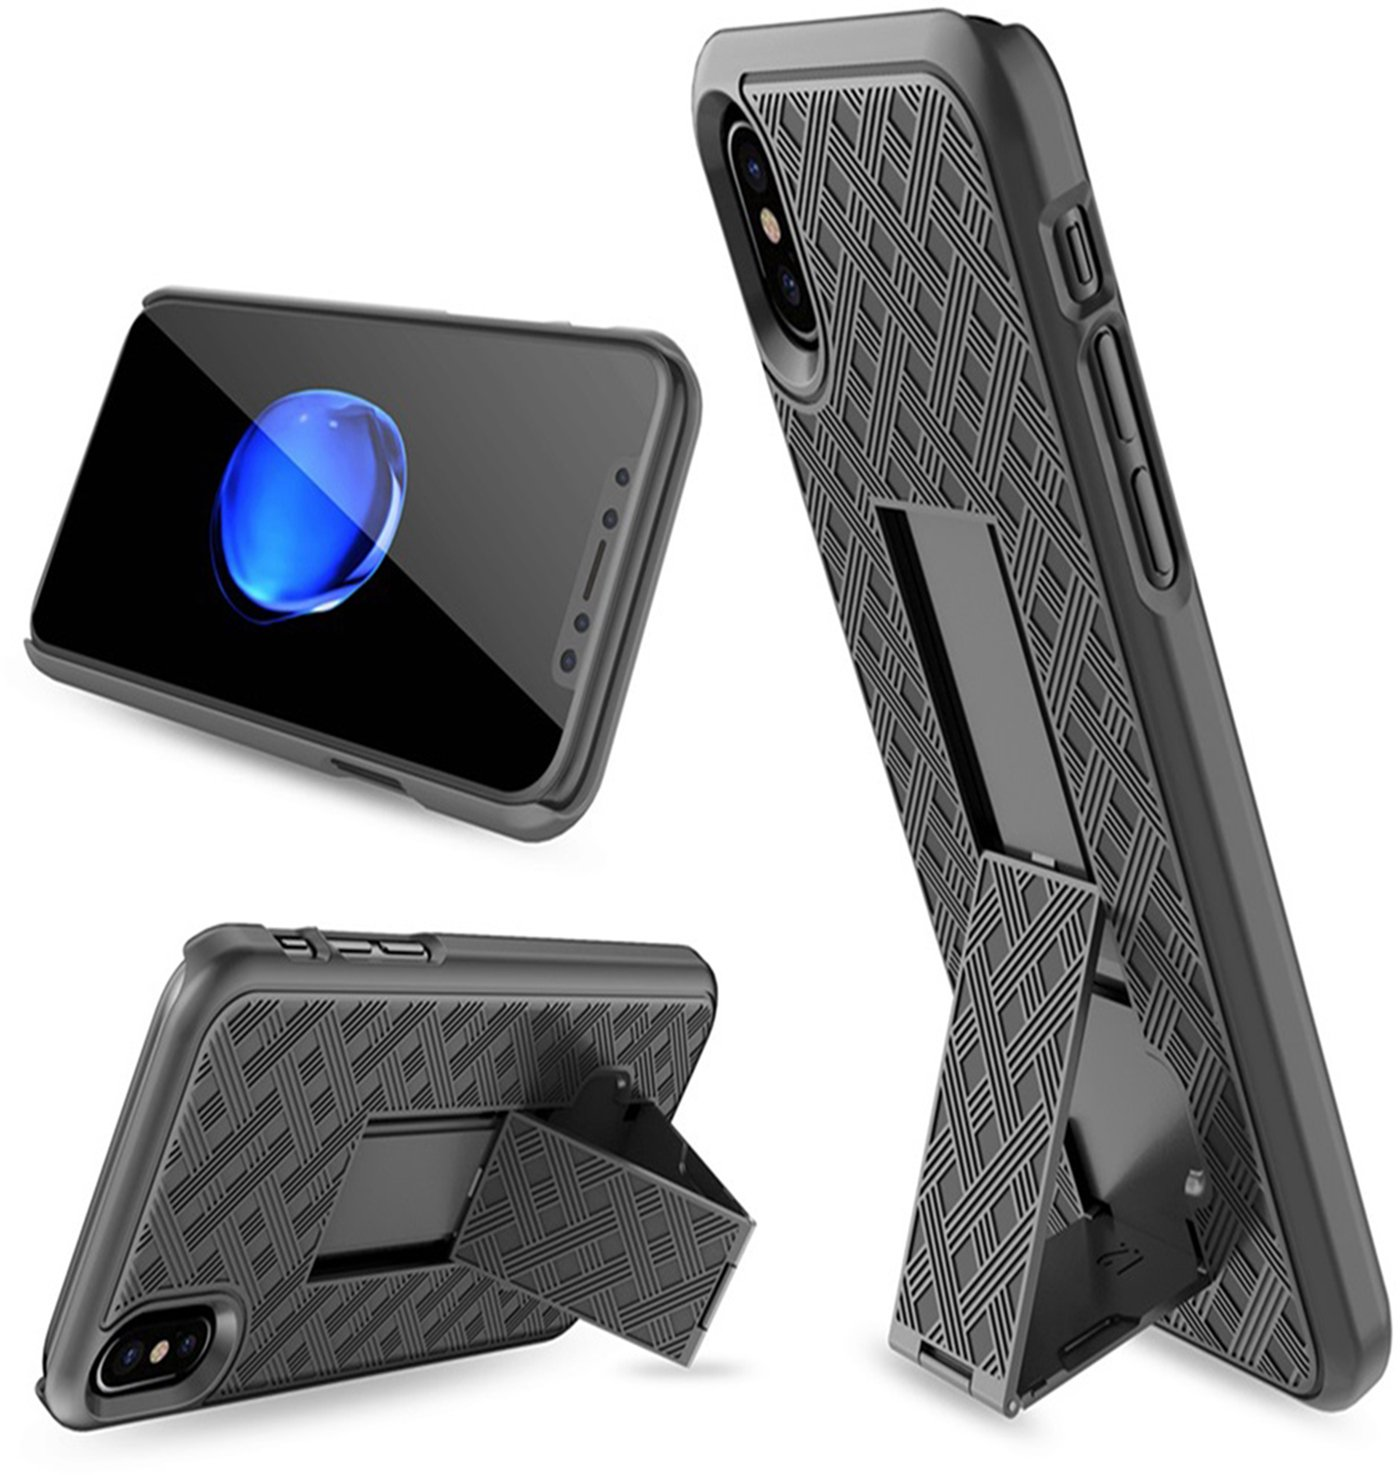 2018//2017 Super Slim Shell Case with Built-in Kickstand Swivel Belt Clip Holster for Apple iPhone X//XS//iPhone 10 iPhone X//XS Holster Case Aduro Combo Shell /& Holster Case